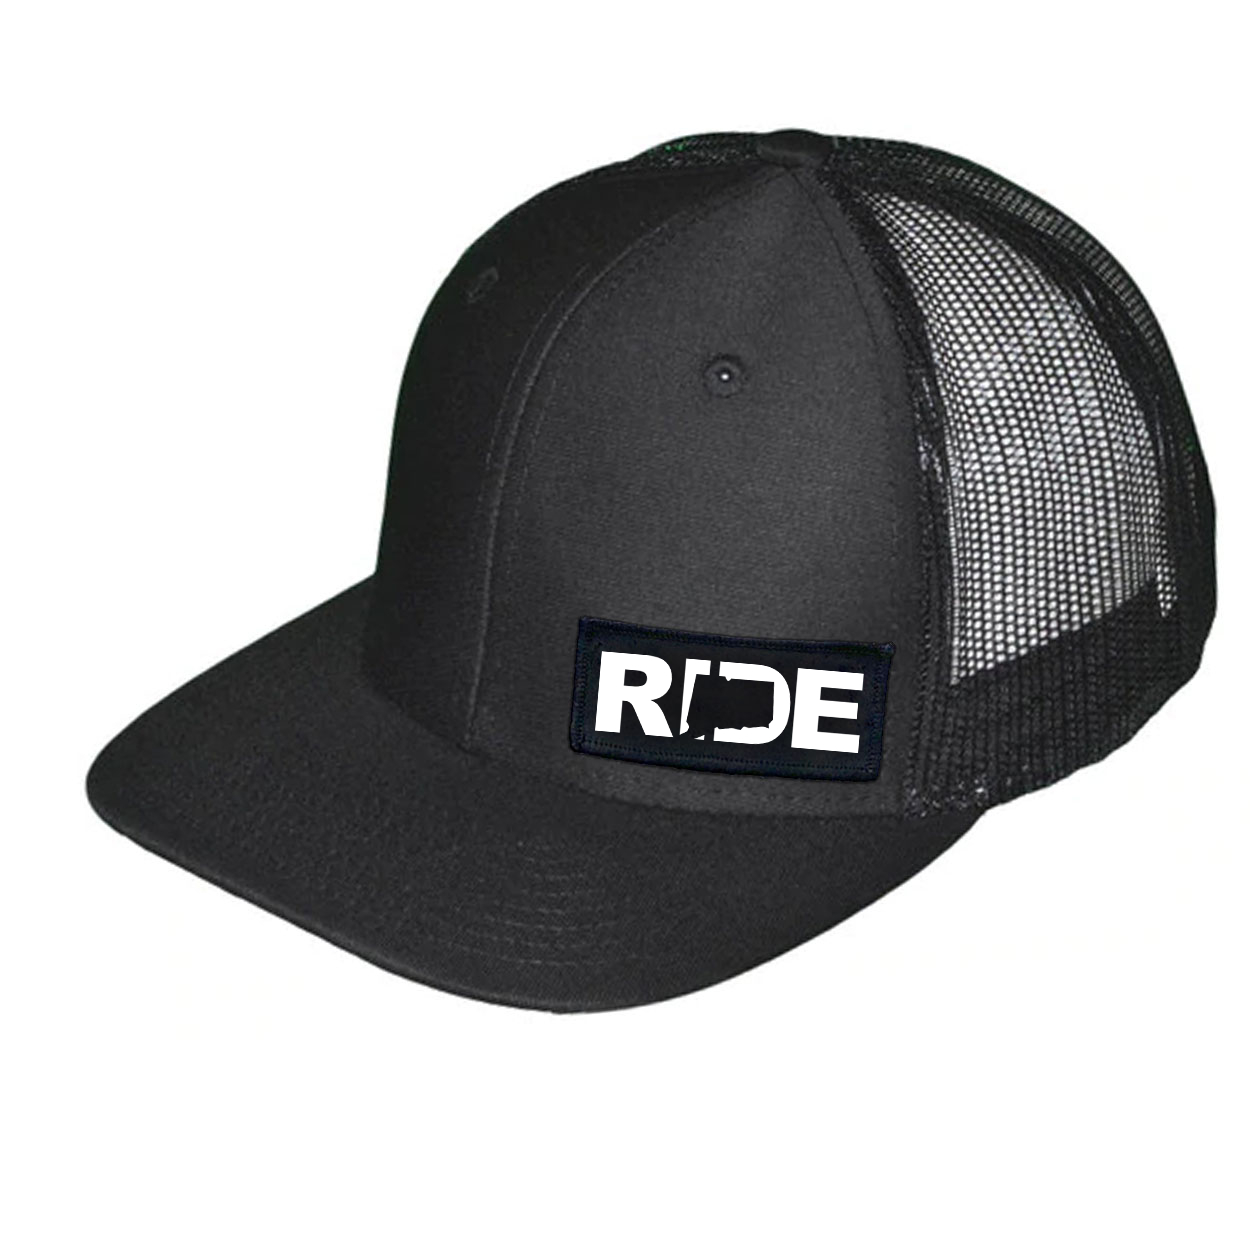 Ride Connecticut Night Out Woven Patch Snapback Trucker Hat Black (White Logo)